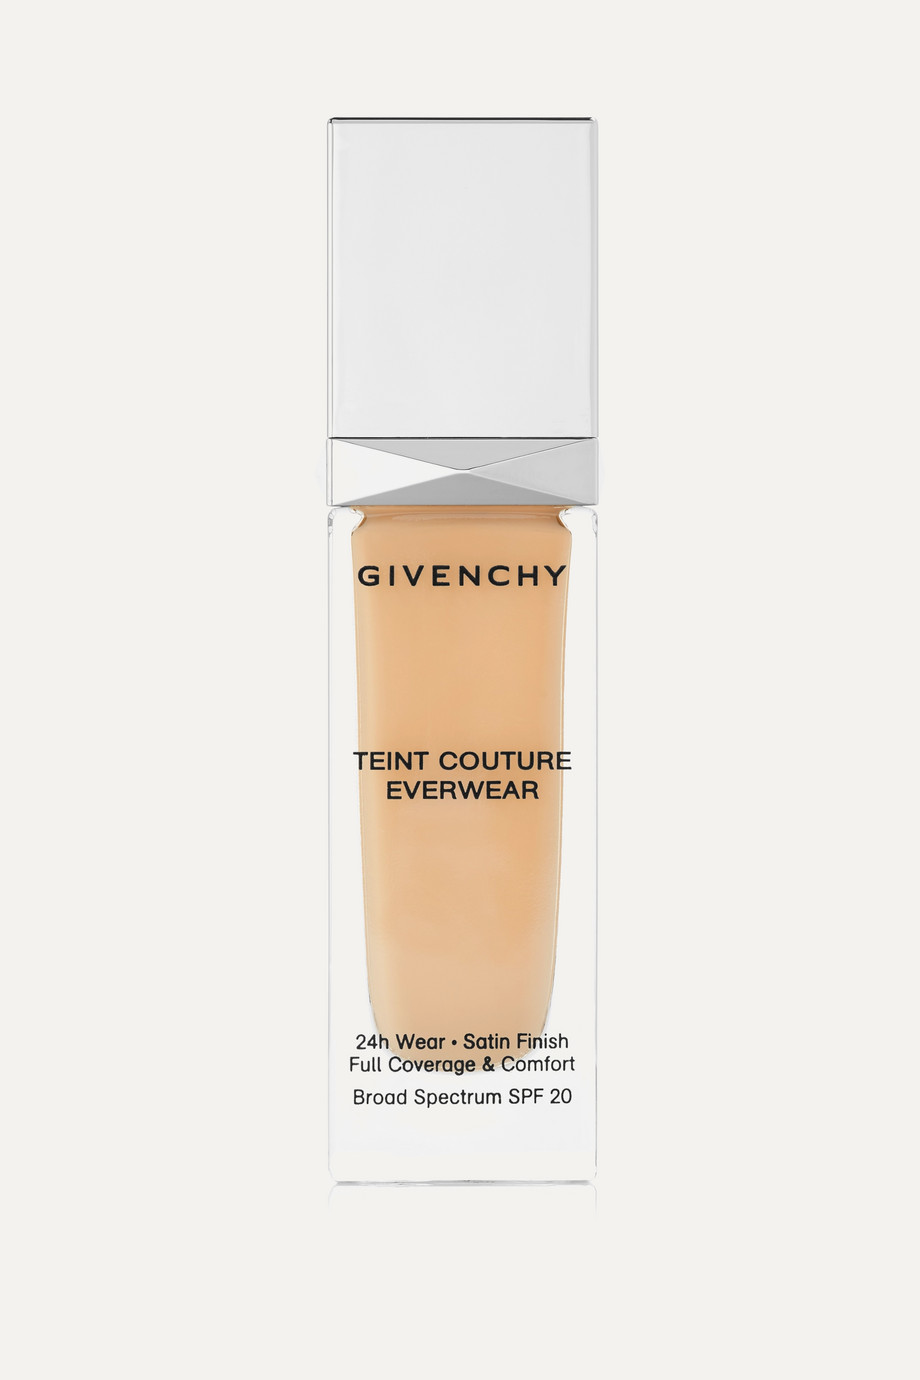 Givenchy Beauty Teint Couture Everwear Foundation SPF20 - Y110, 30ml